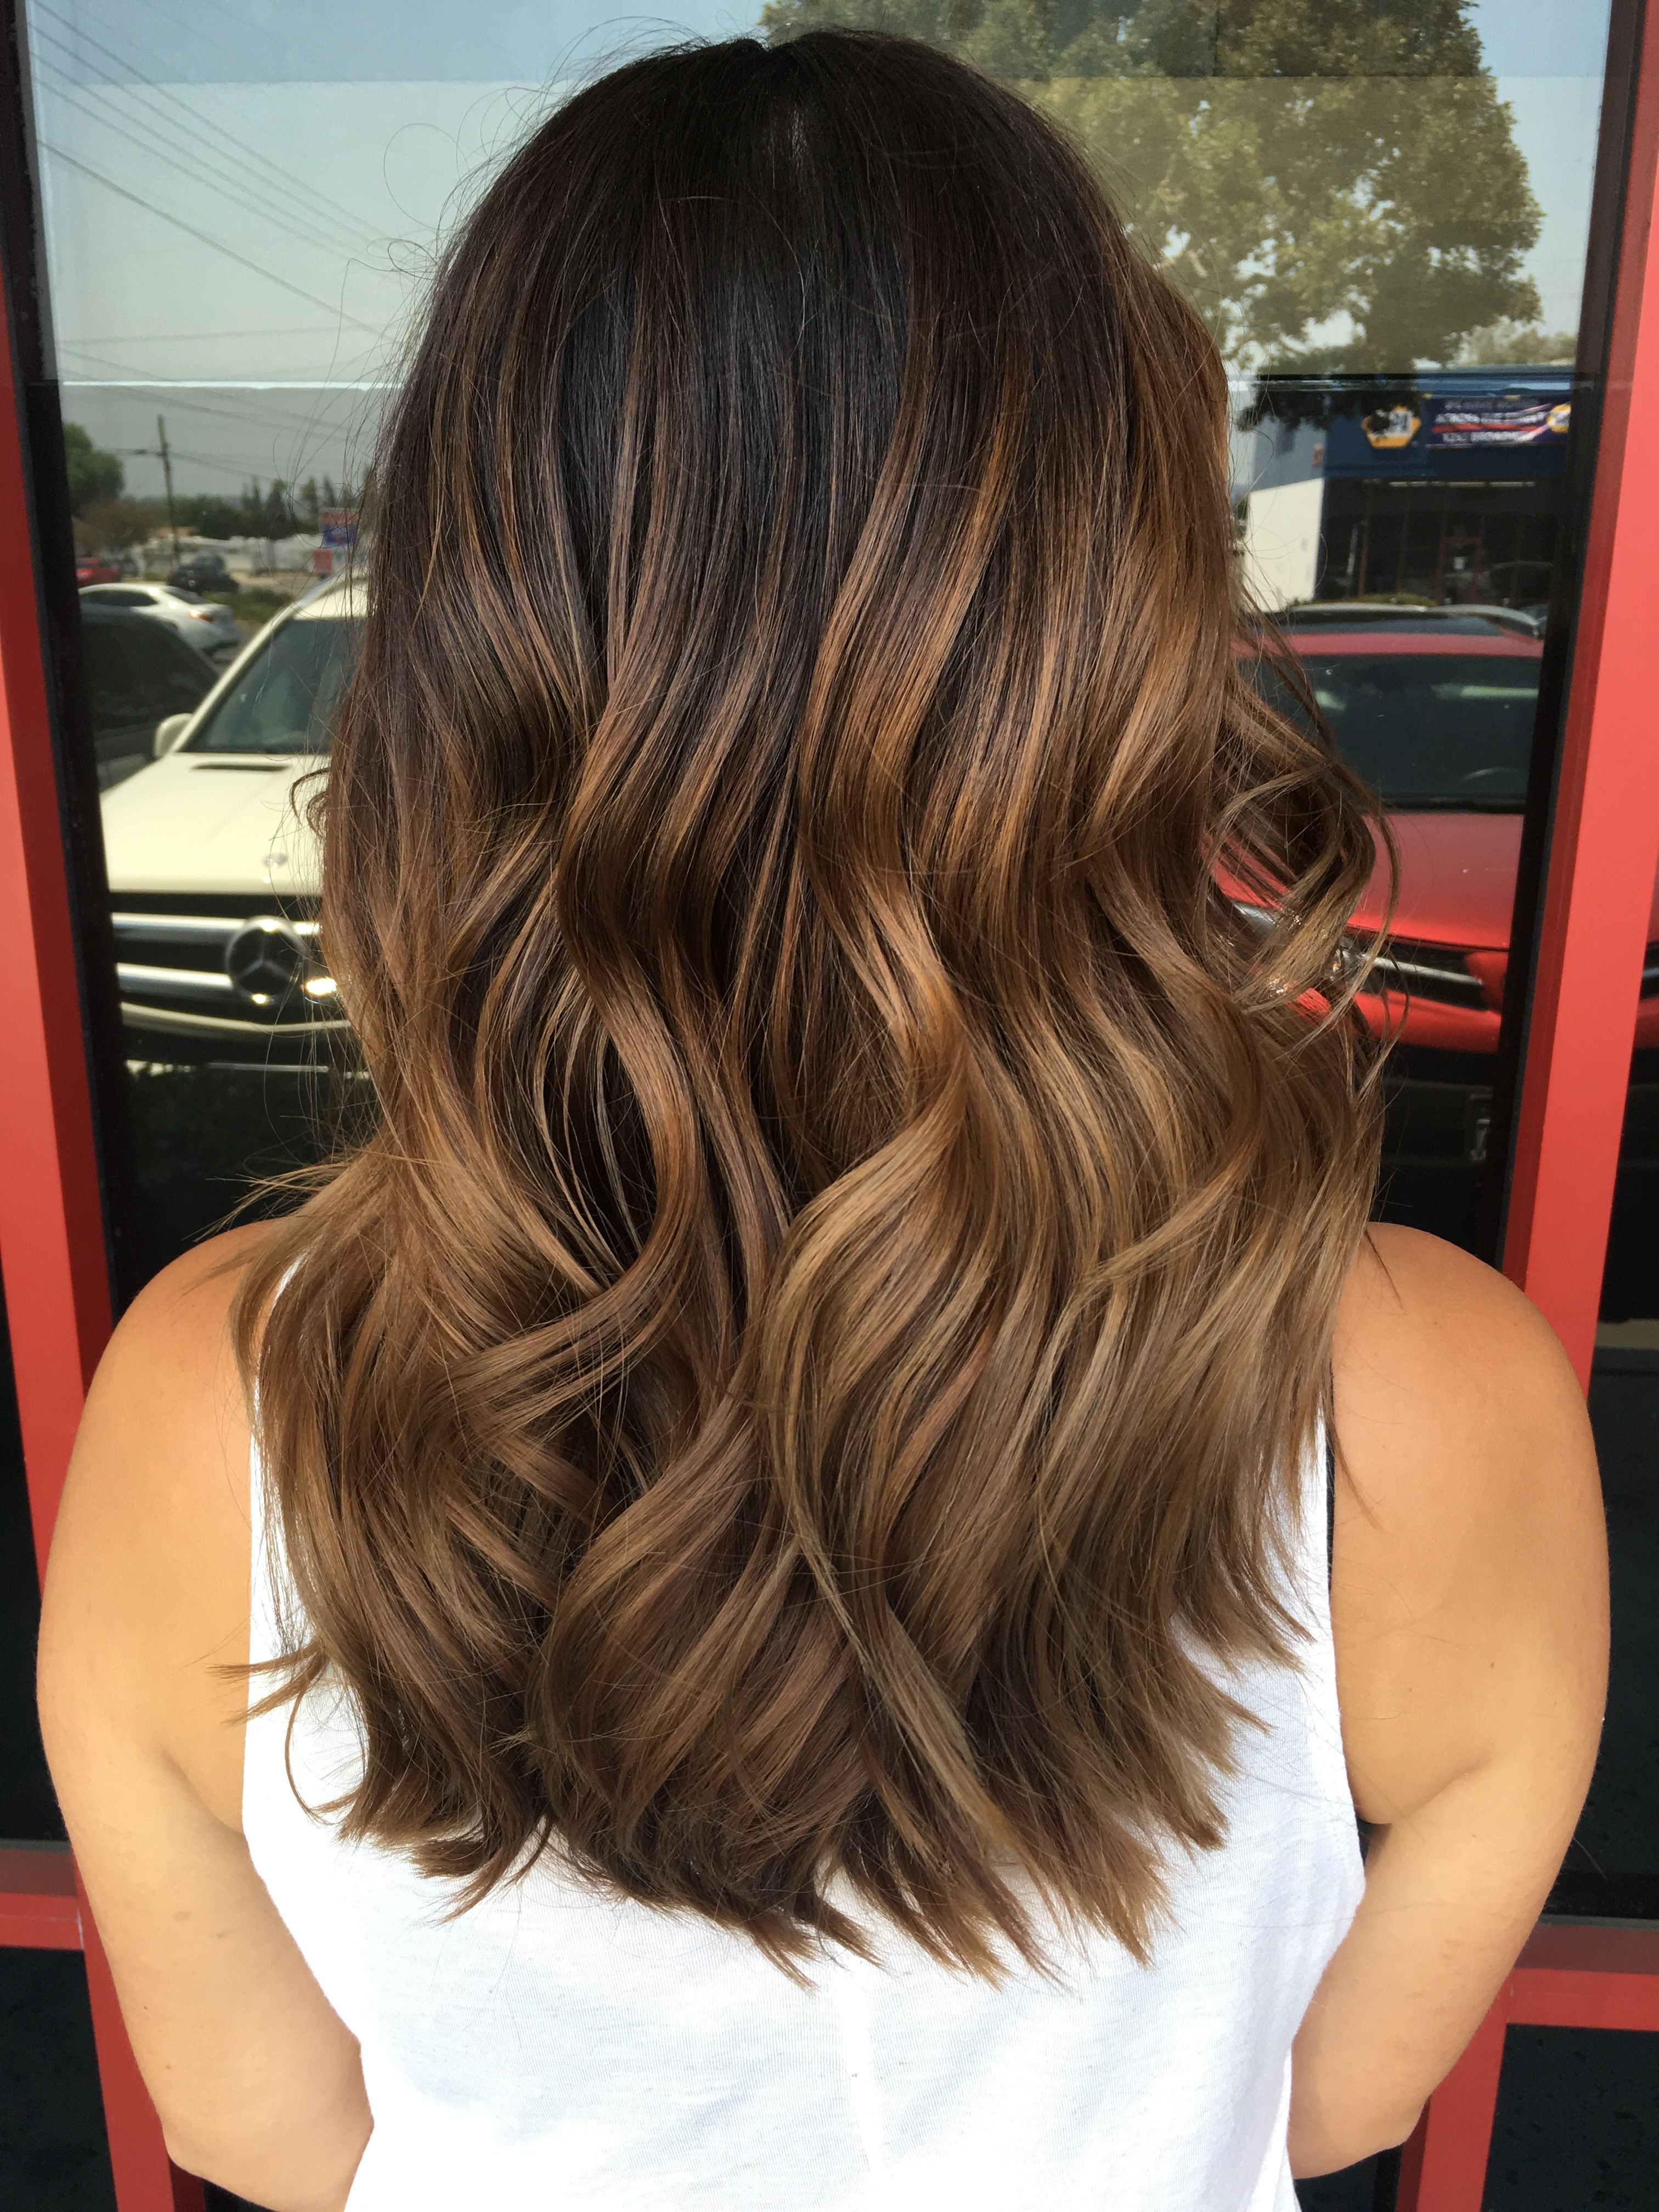 Favorite Medium Hairstyles With Balayage Throughout Balayage Hair, Balayage Highlights, Brown Balayage Hair, Highlights (View 8 of 20)